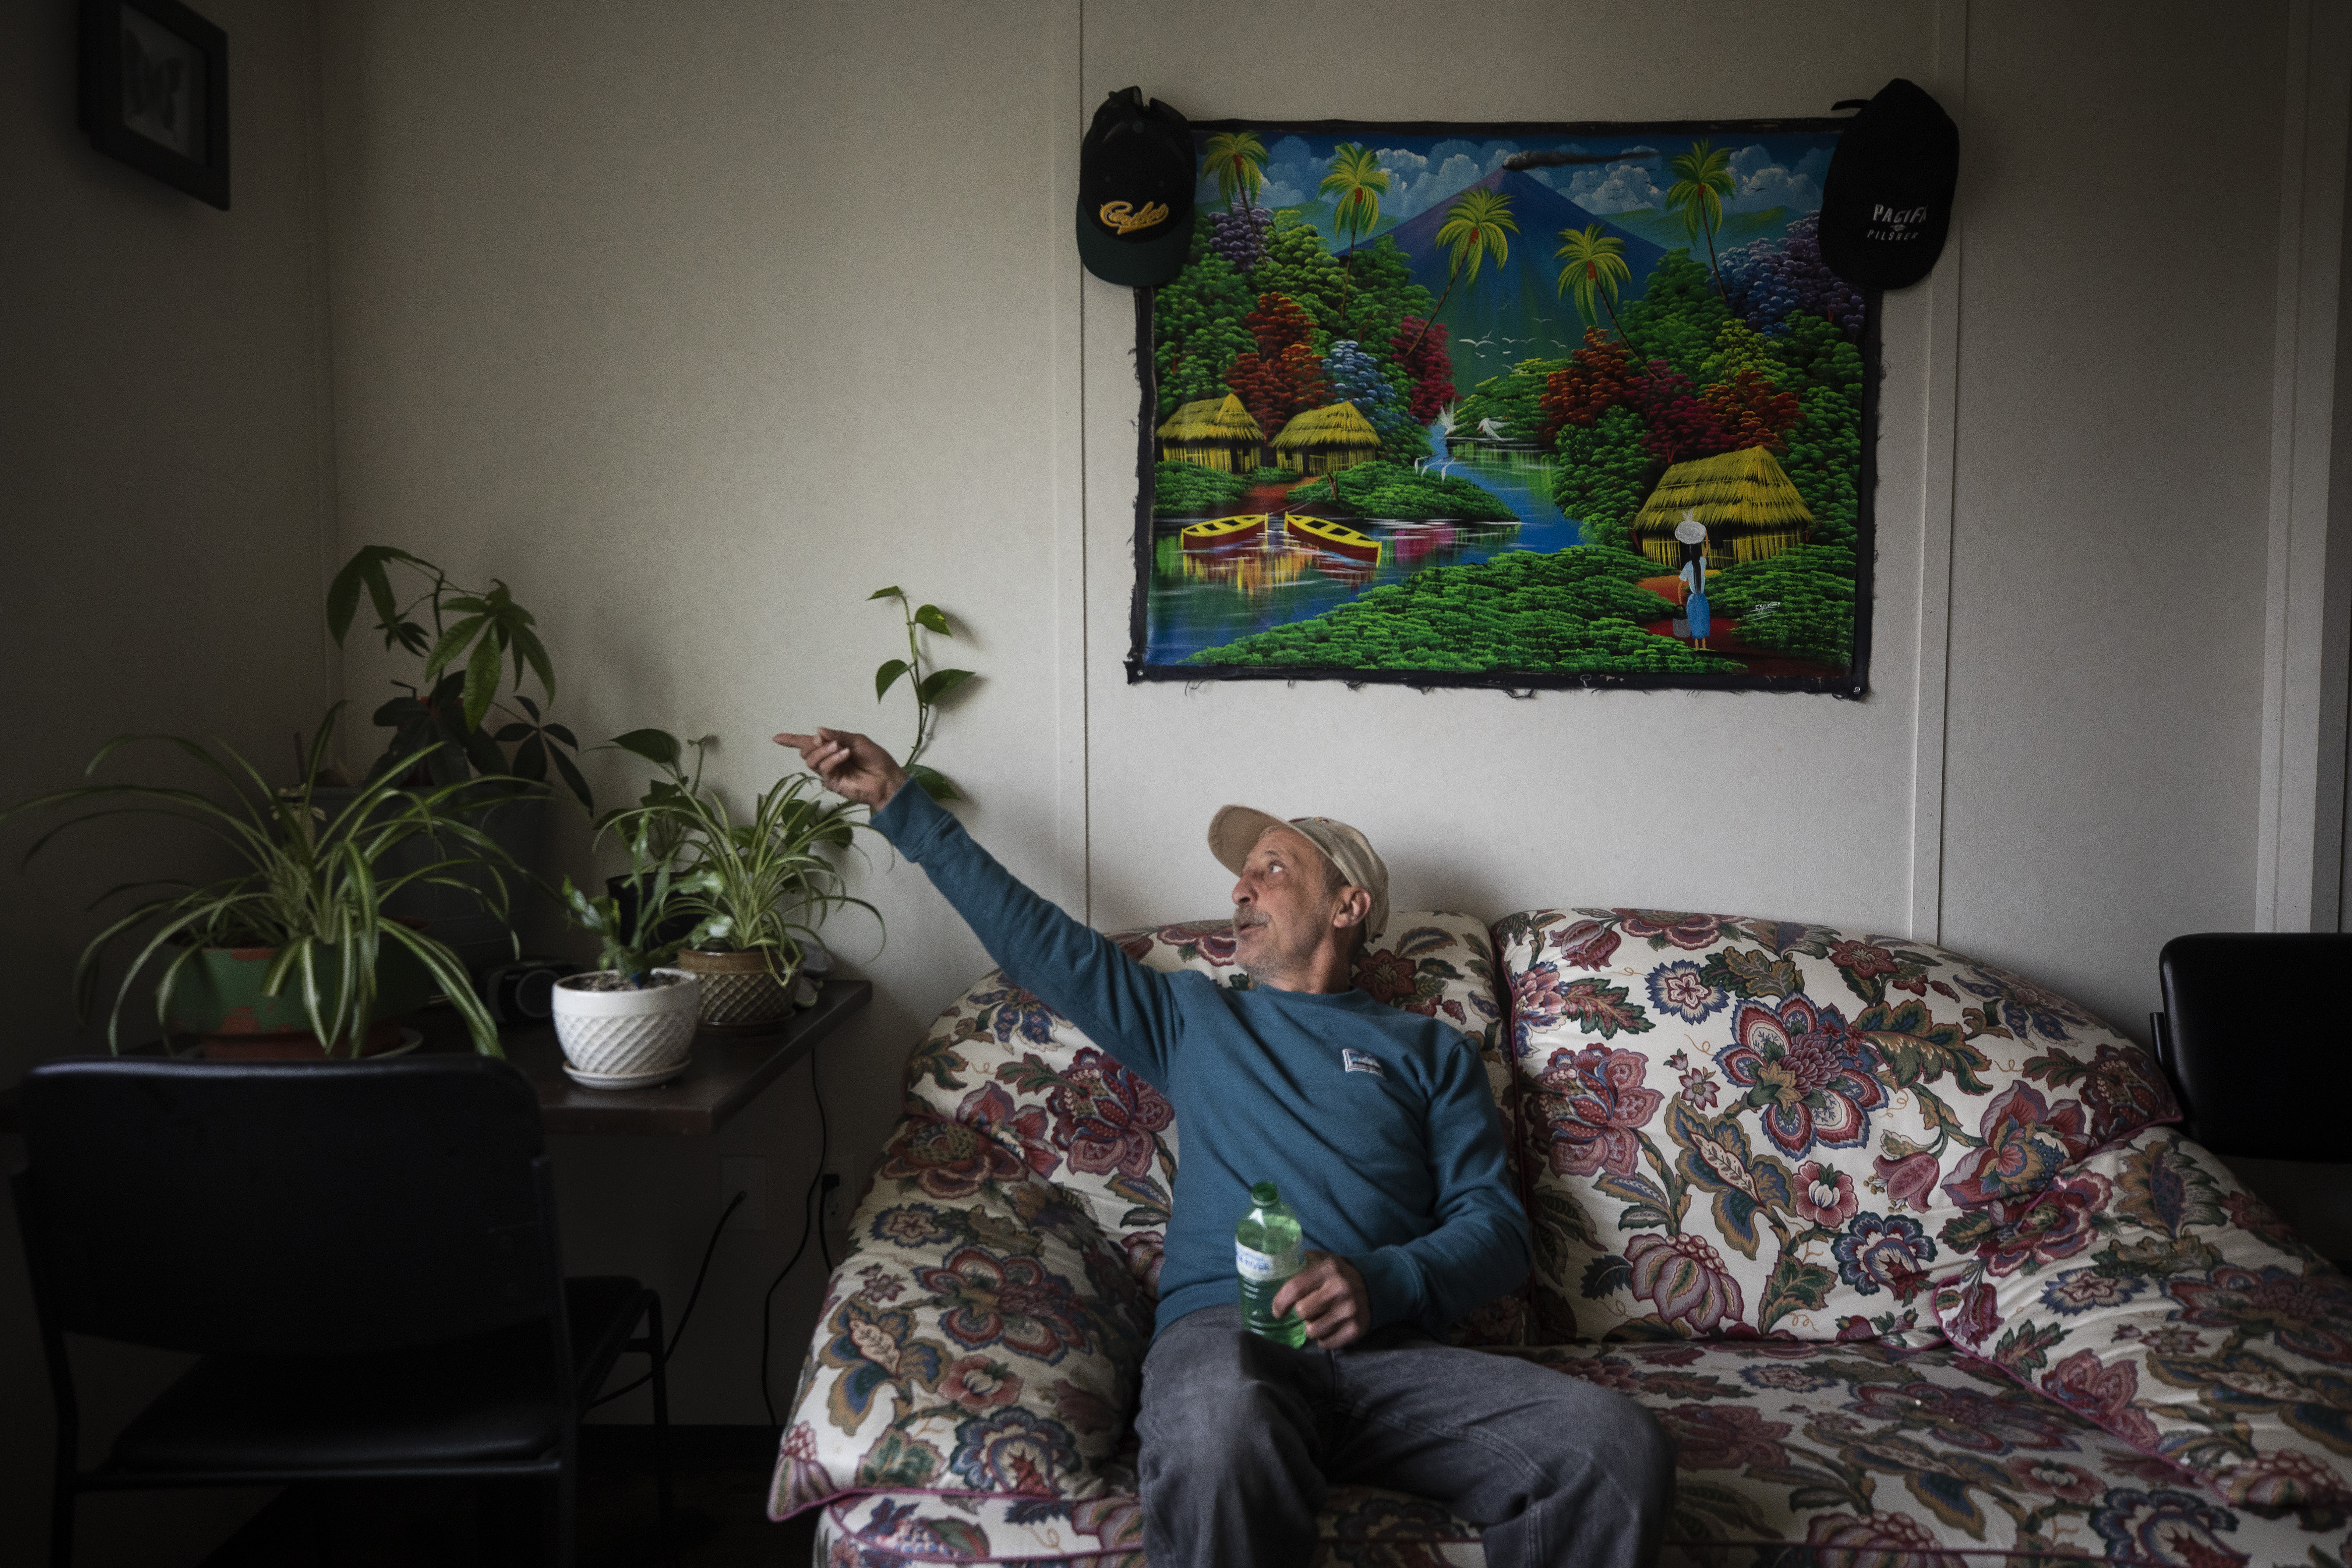 Charlie Smyth's plant collection has grown since he first moved into his temporary modular unit in 2018. (Ben Nelms/CBC)